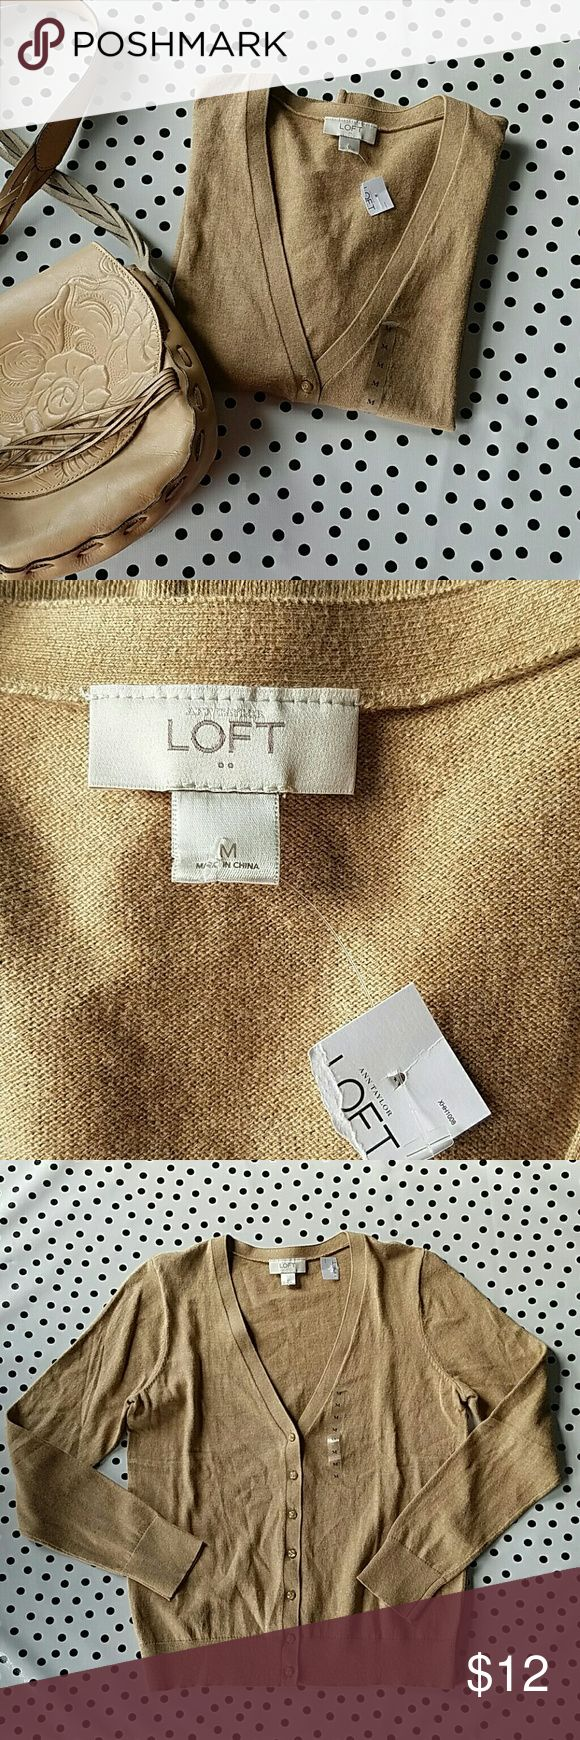 Ann Taylor Loft Outlet Cardigan New with tags. Ann Taylor Loft Outlet V neck Cardigan. Perfect camel color. Ann Taylor Sweaters Cardigans